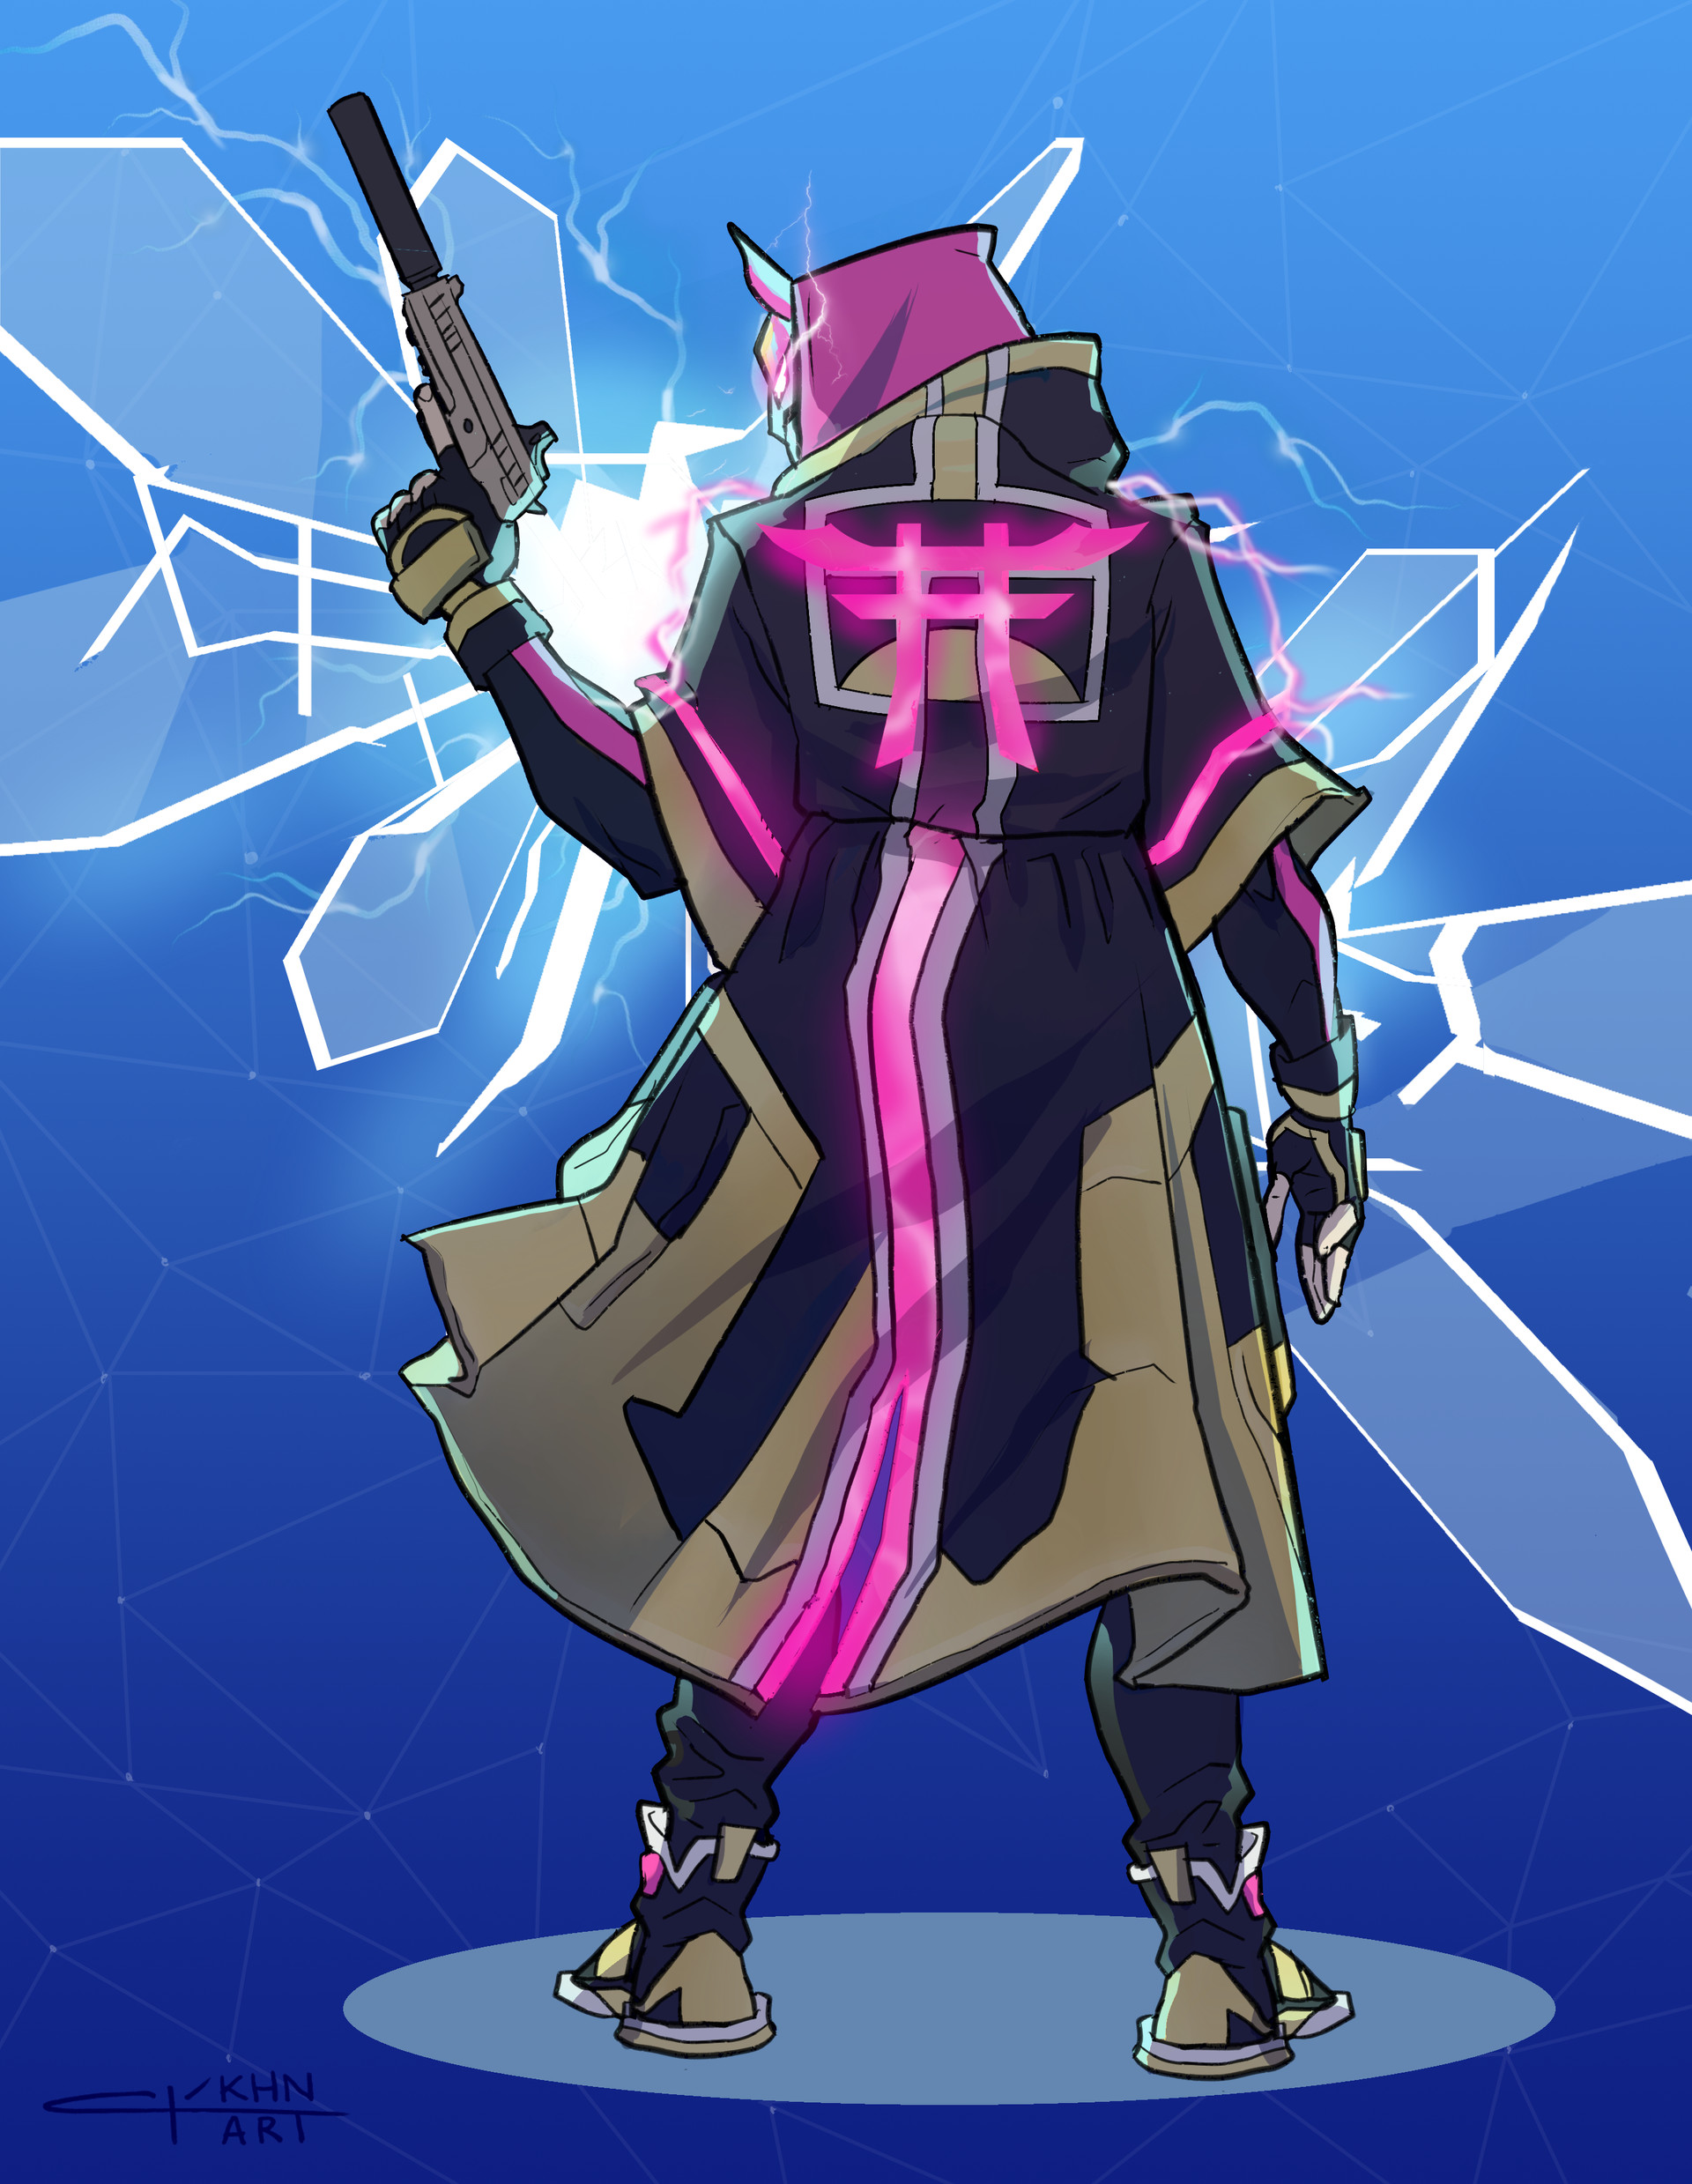 Fornite Drift Wallpaper Epic Games Fanart 4193 Wallpapers and 1920x2478